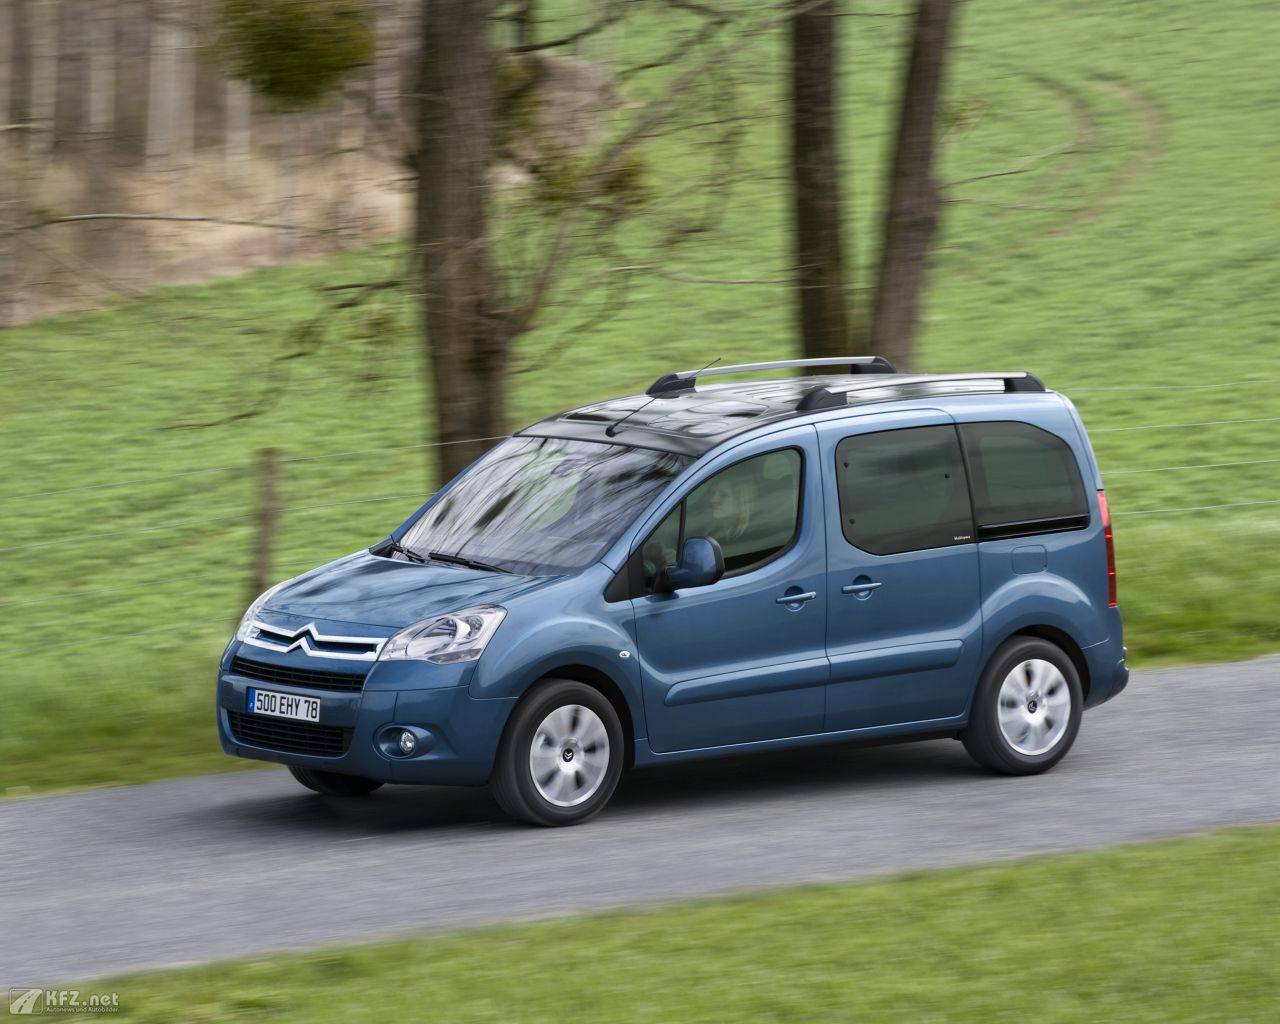 citroen-berlingo-1280x1024-71